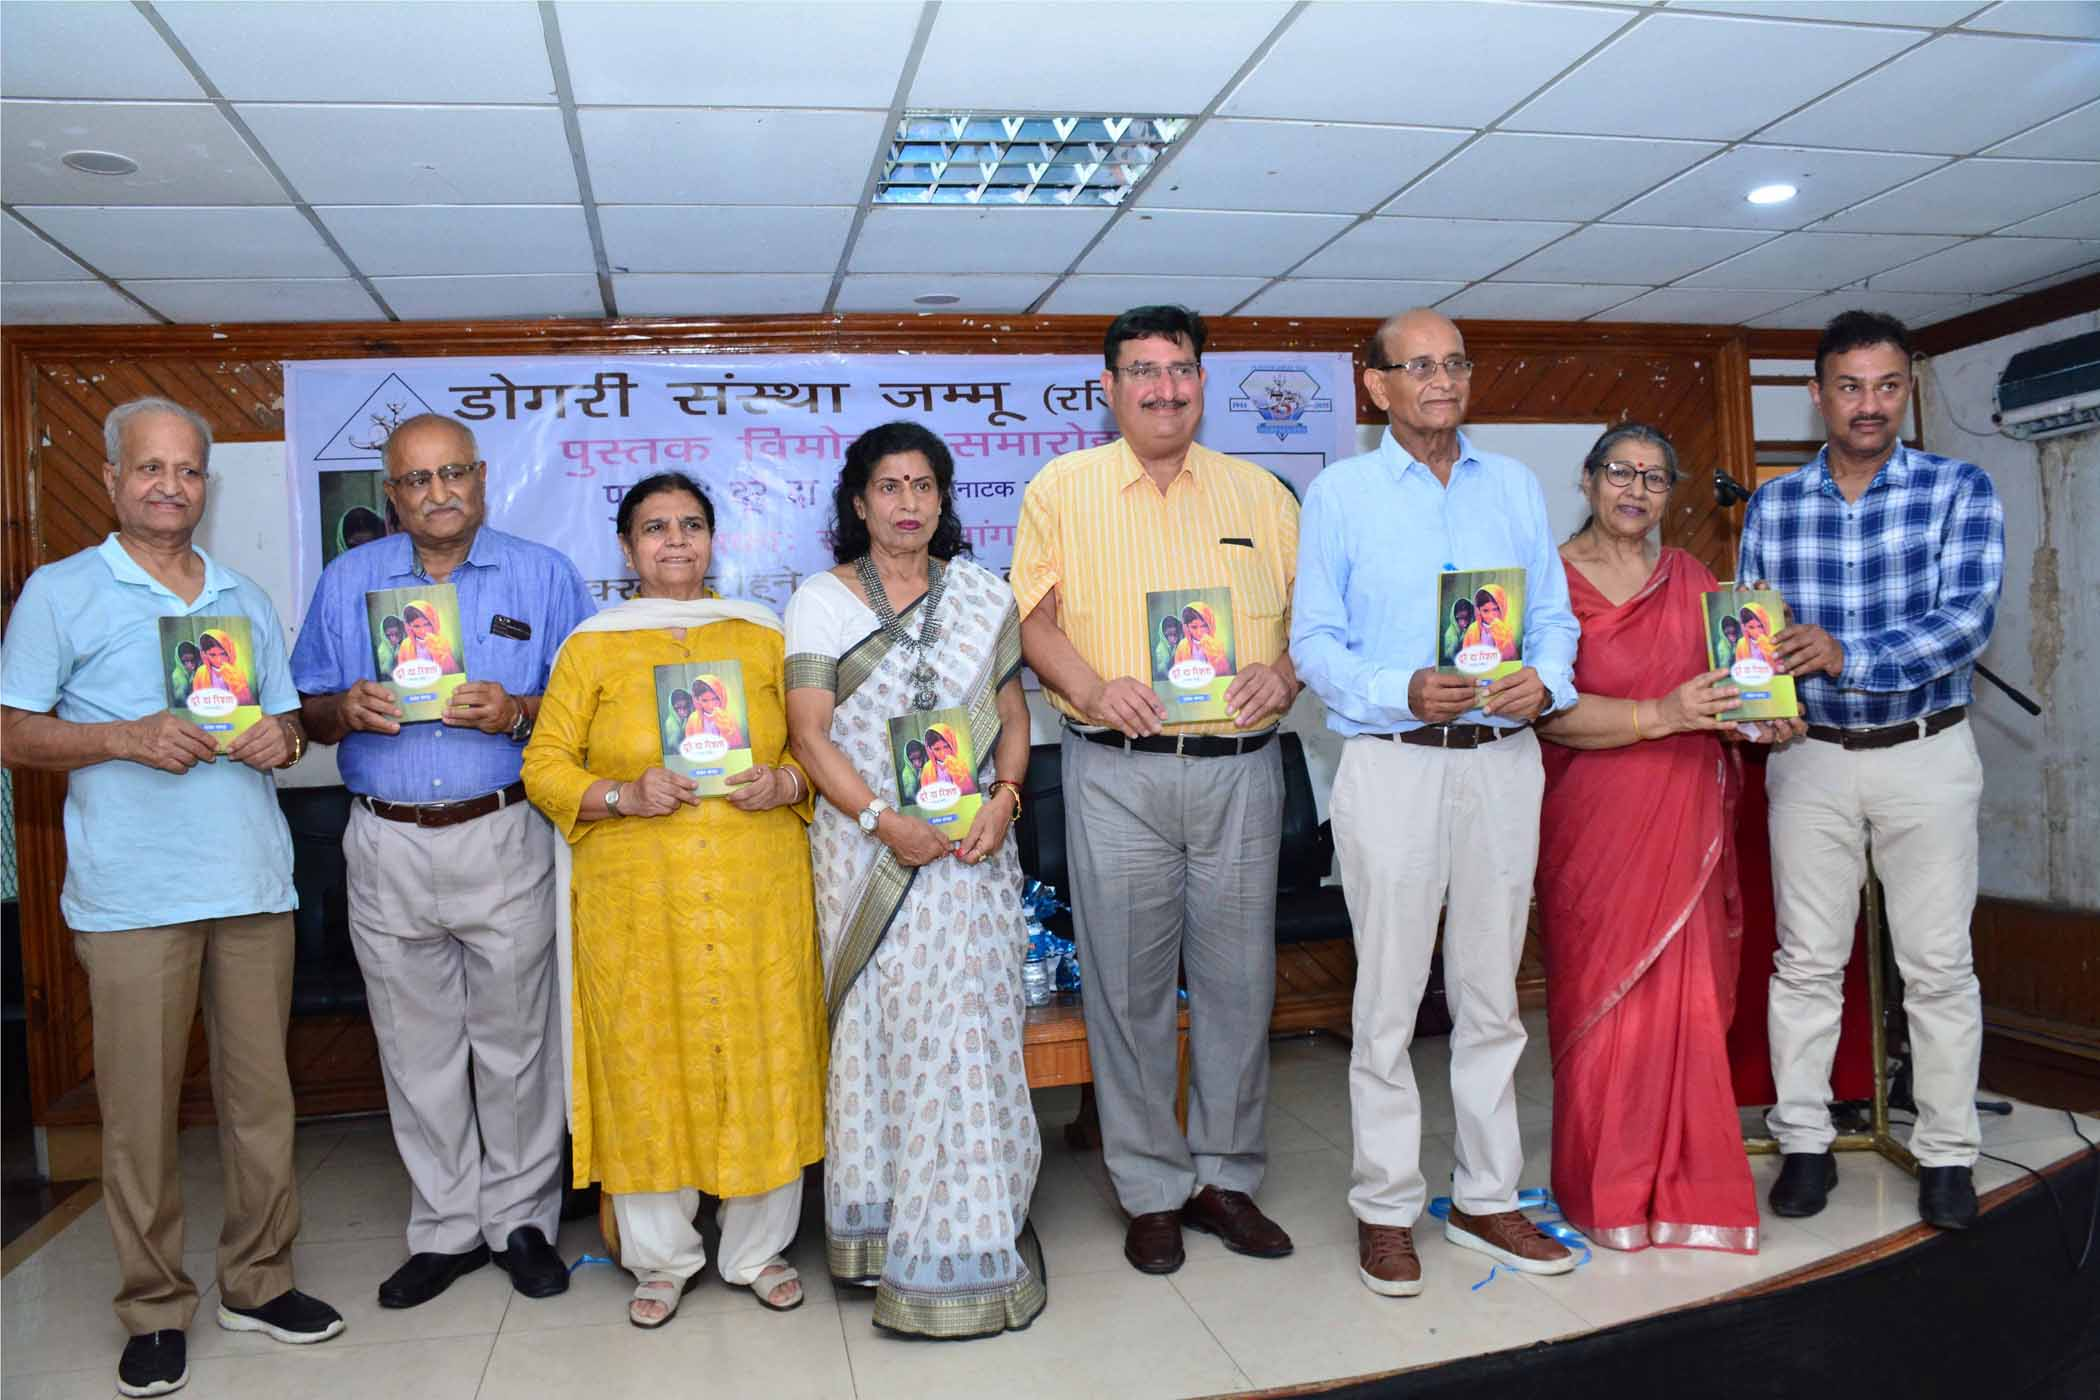 Santosh Sangra Book Released